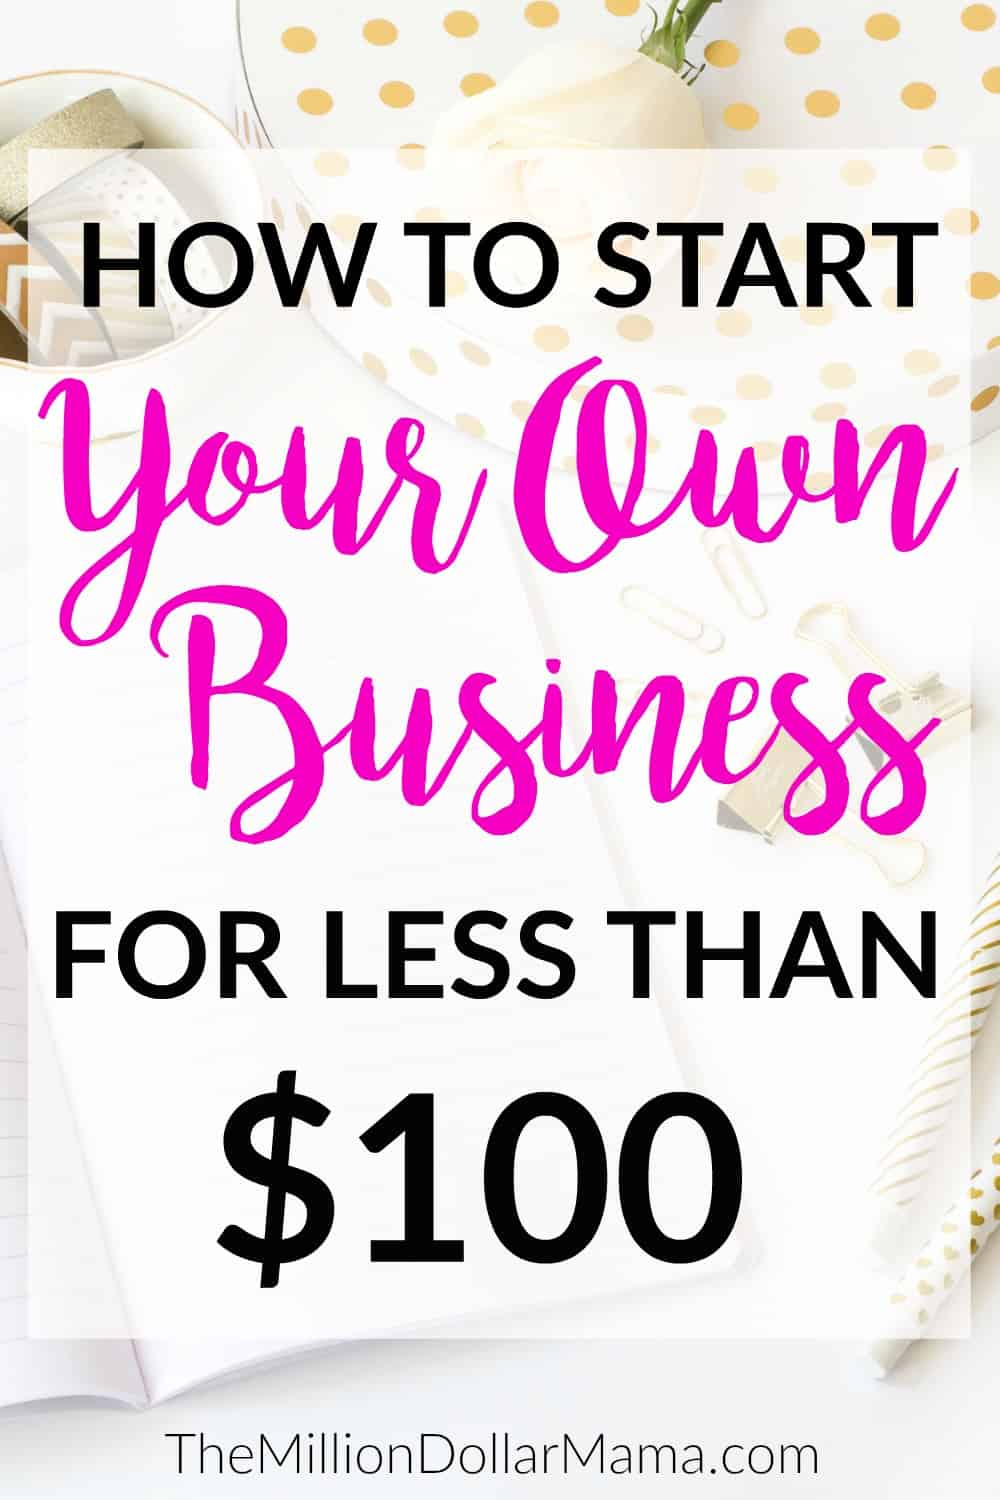 Low Cost Business Ideas Are You A Sahm Who Wants To Make Money From Home